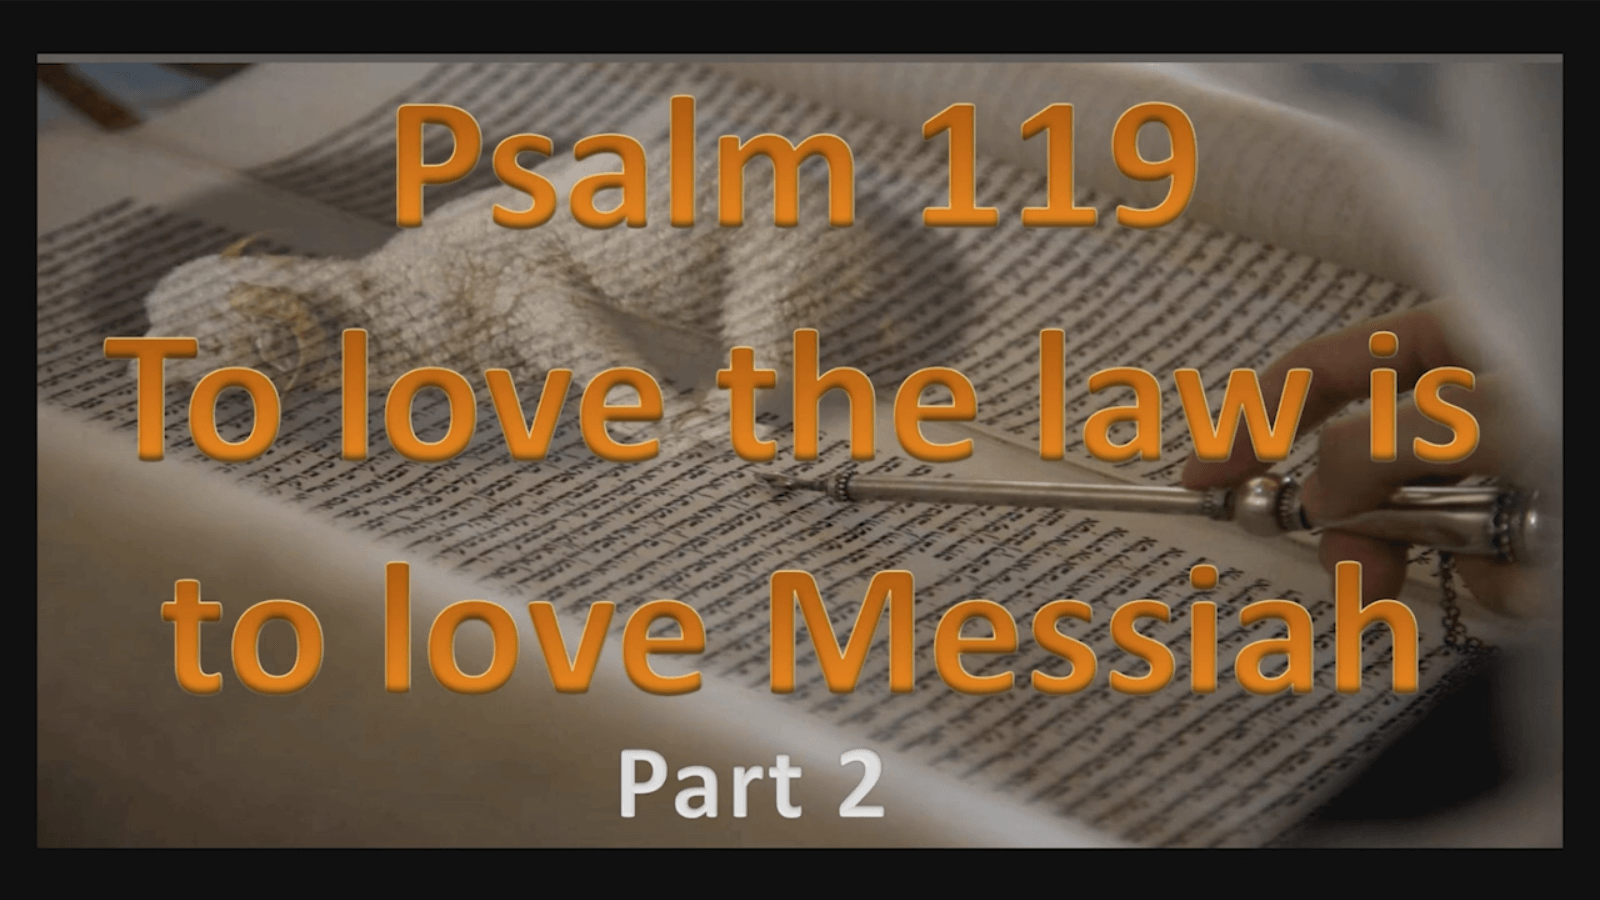 Psalm 119: To love the law is to love Messiah - Part 2 - Study